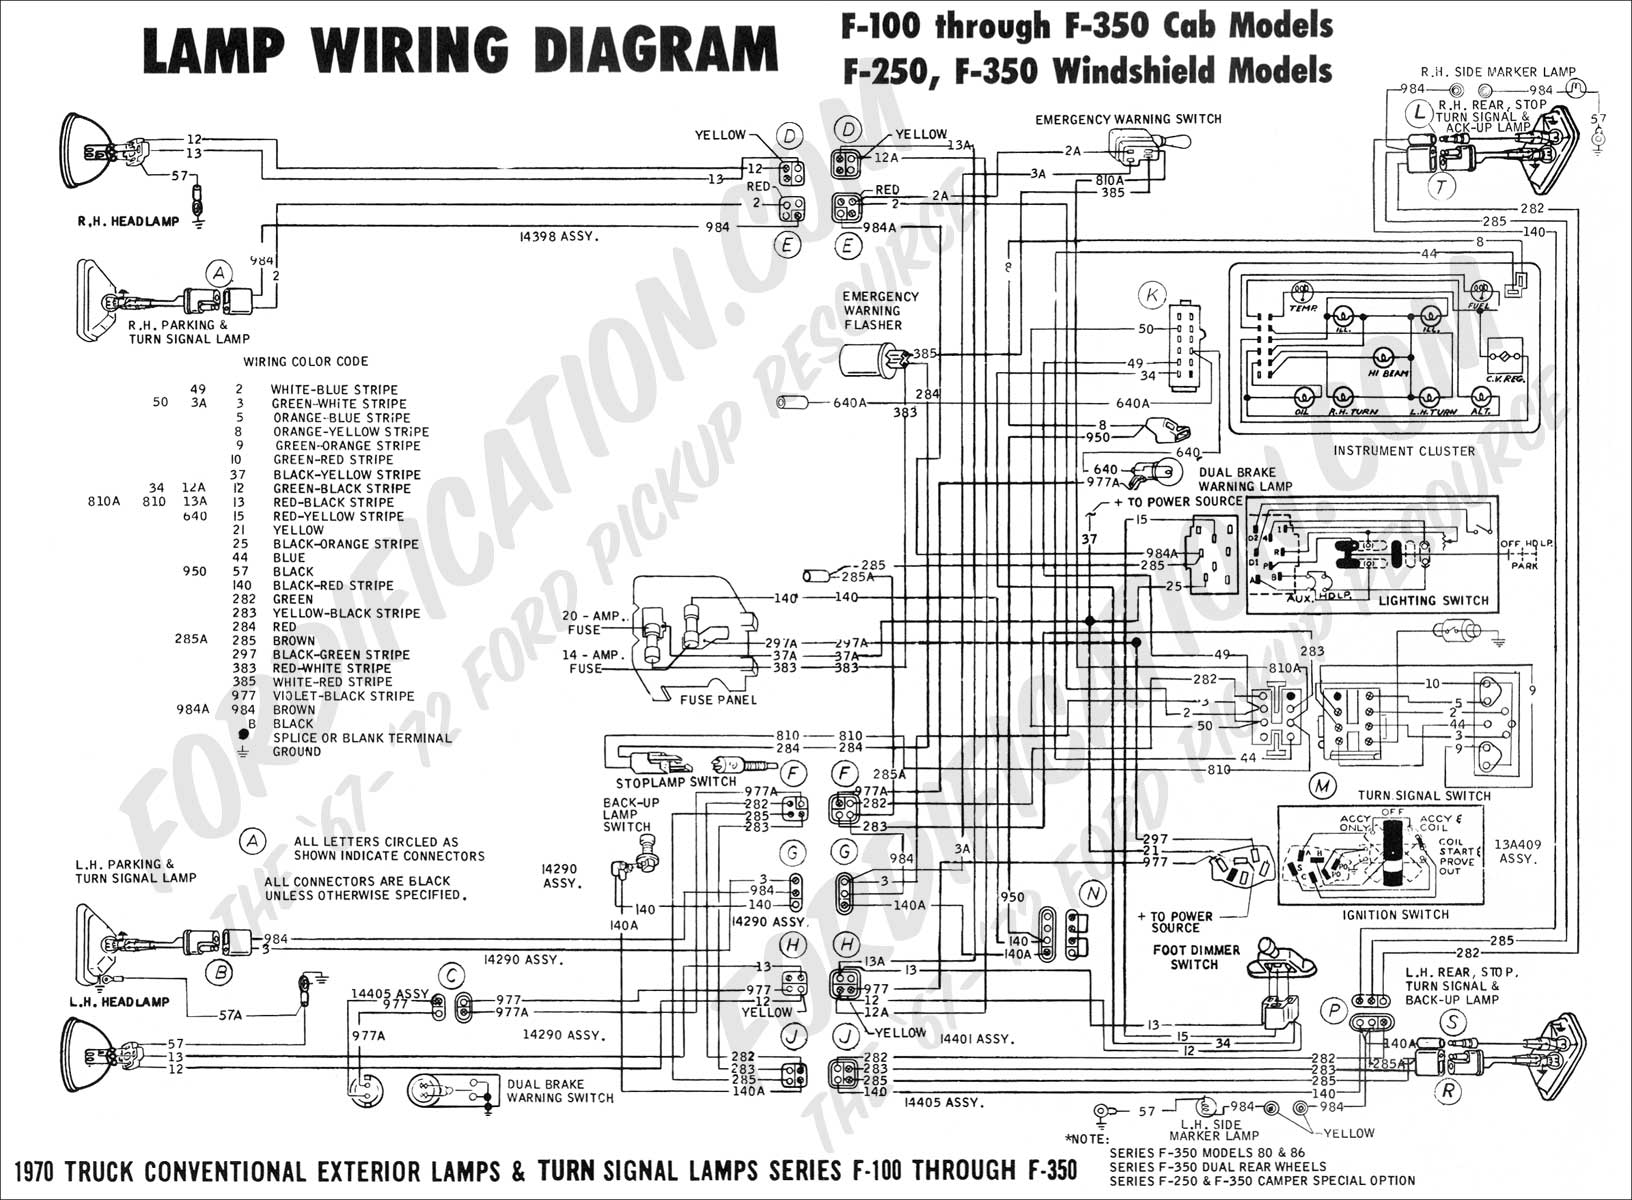 2004 ford f350 wiring diagram wiring diagram yer2004 f 350 wiring diagram diagram data schema 2004 ford f350 headlight wiring diagram 2004 f350